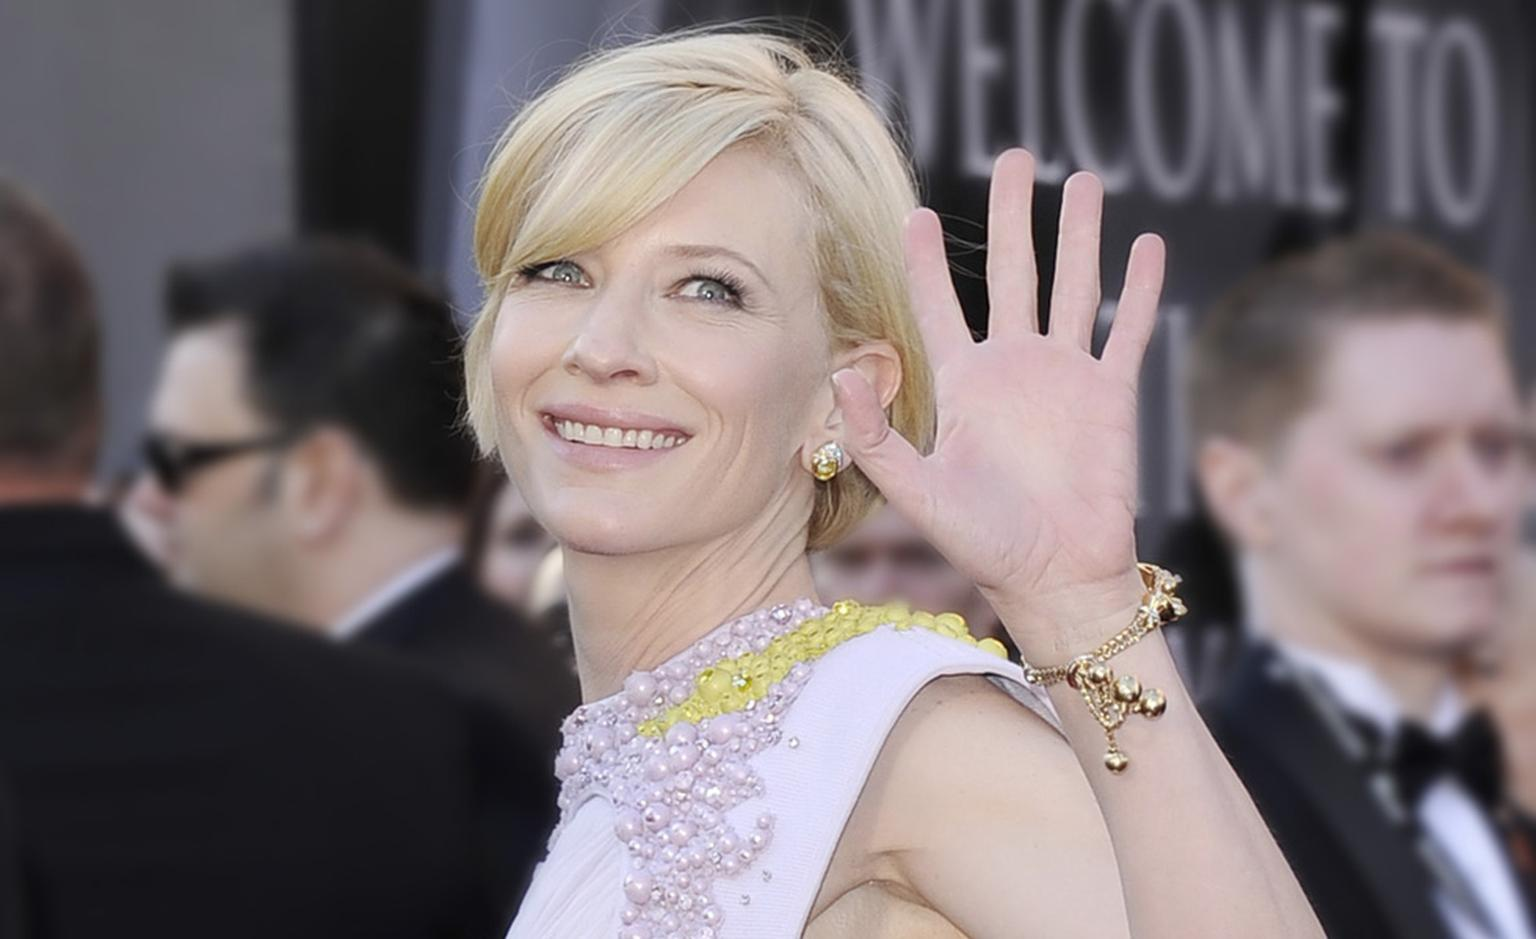 CATE BLANCHETT wears vintage Van Cleef & Arpels to the Academy Awards. The bracelet is a 1946 Tassel Diamond bracelet and the earrings are from 1981 and set with white and yellow diamonds. Photo by Kevork Djansezian, Getty Images